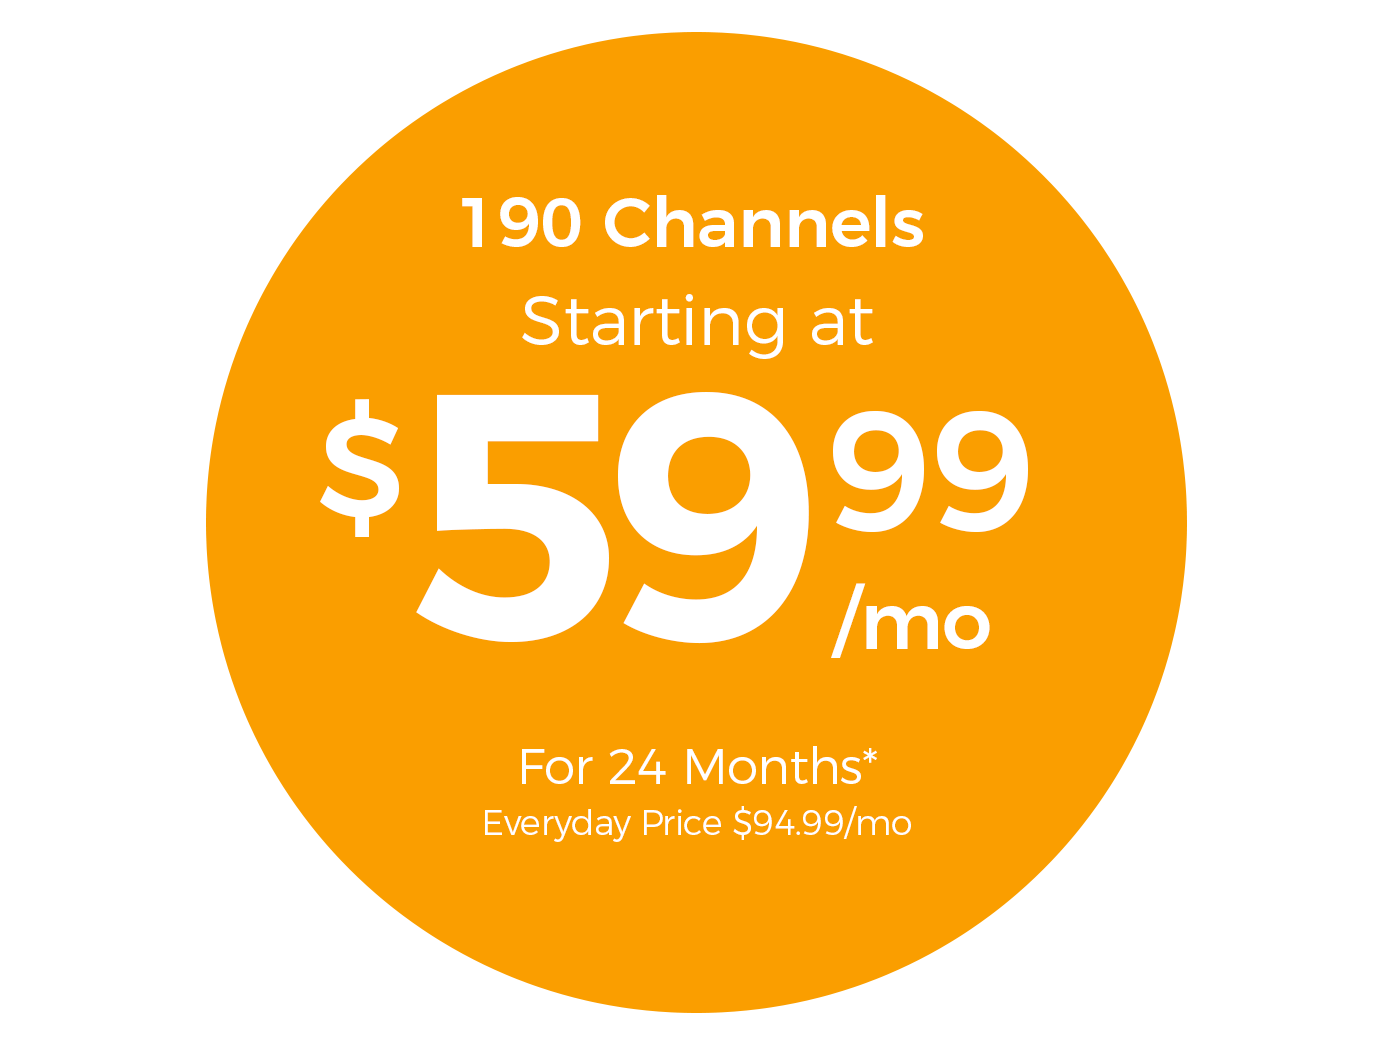 190 Channels Starting at $59.99/mo For 24 Months* Everyday Price $94.99/mo